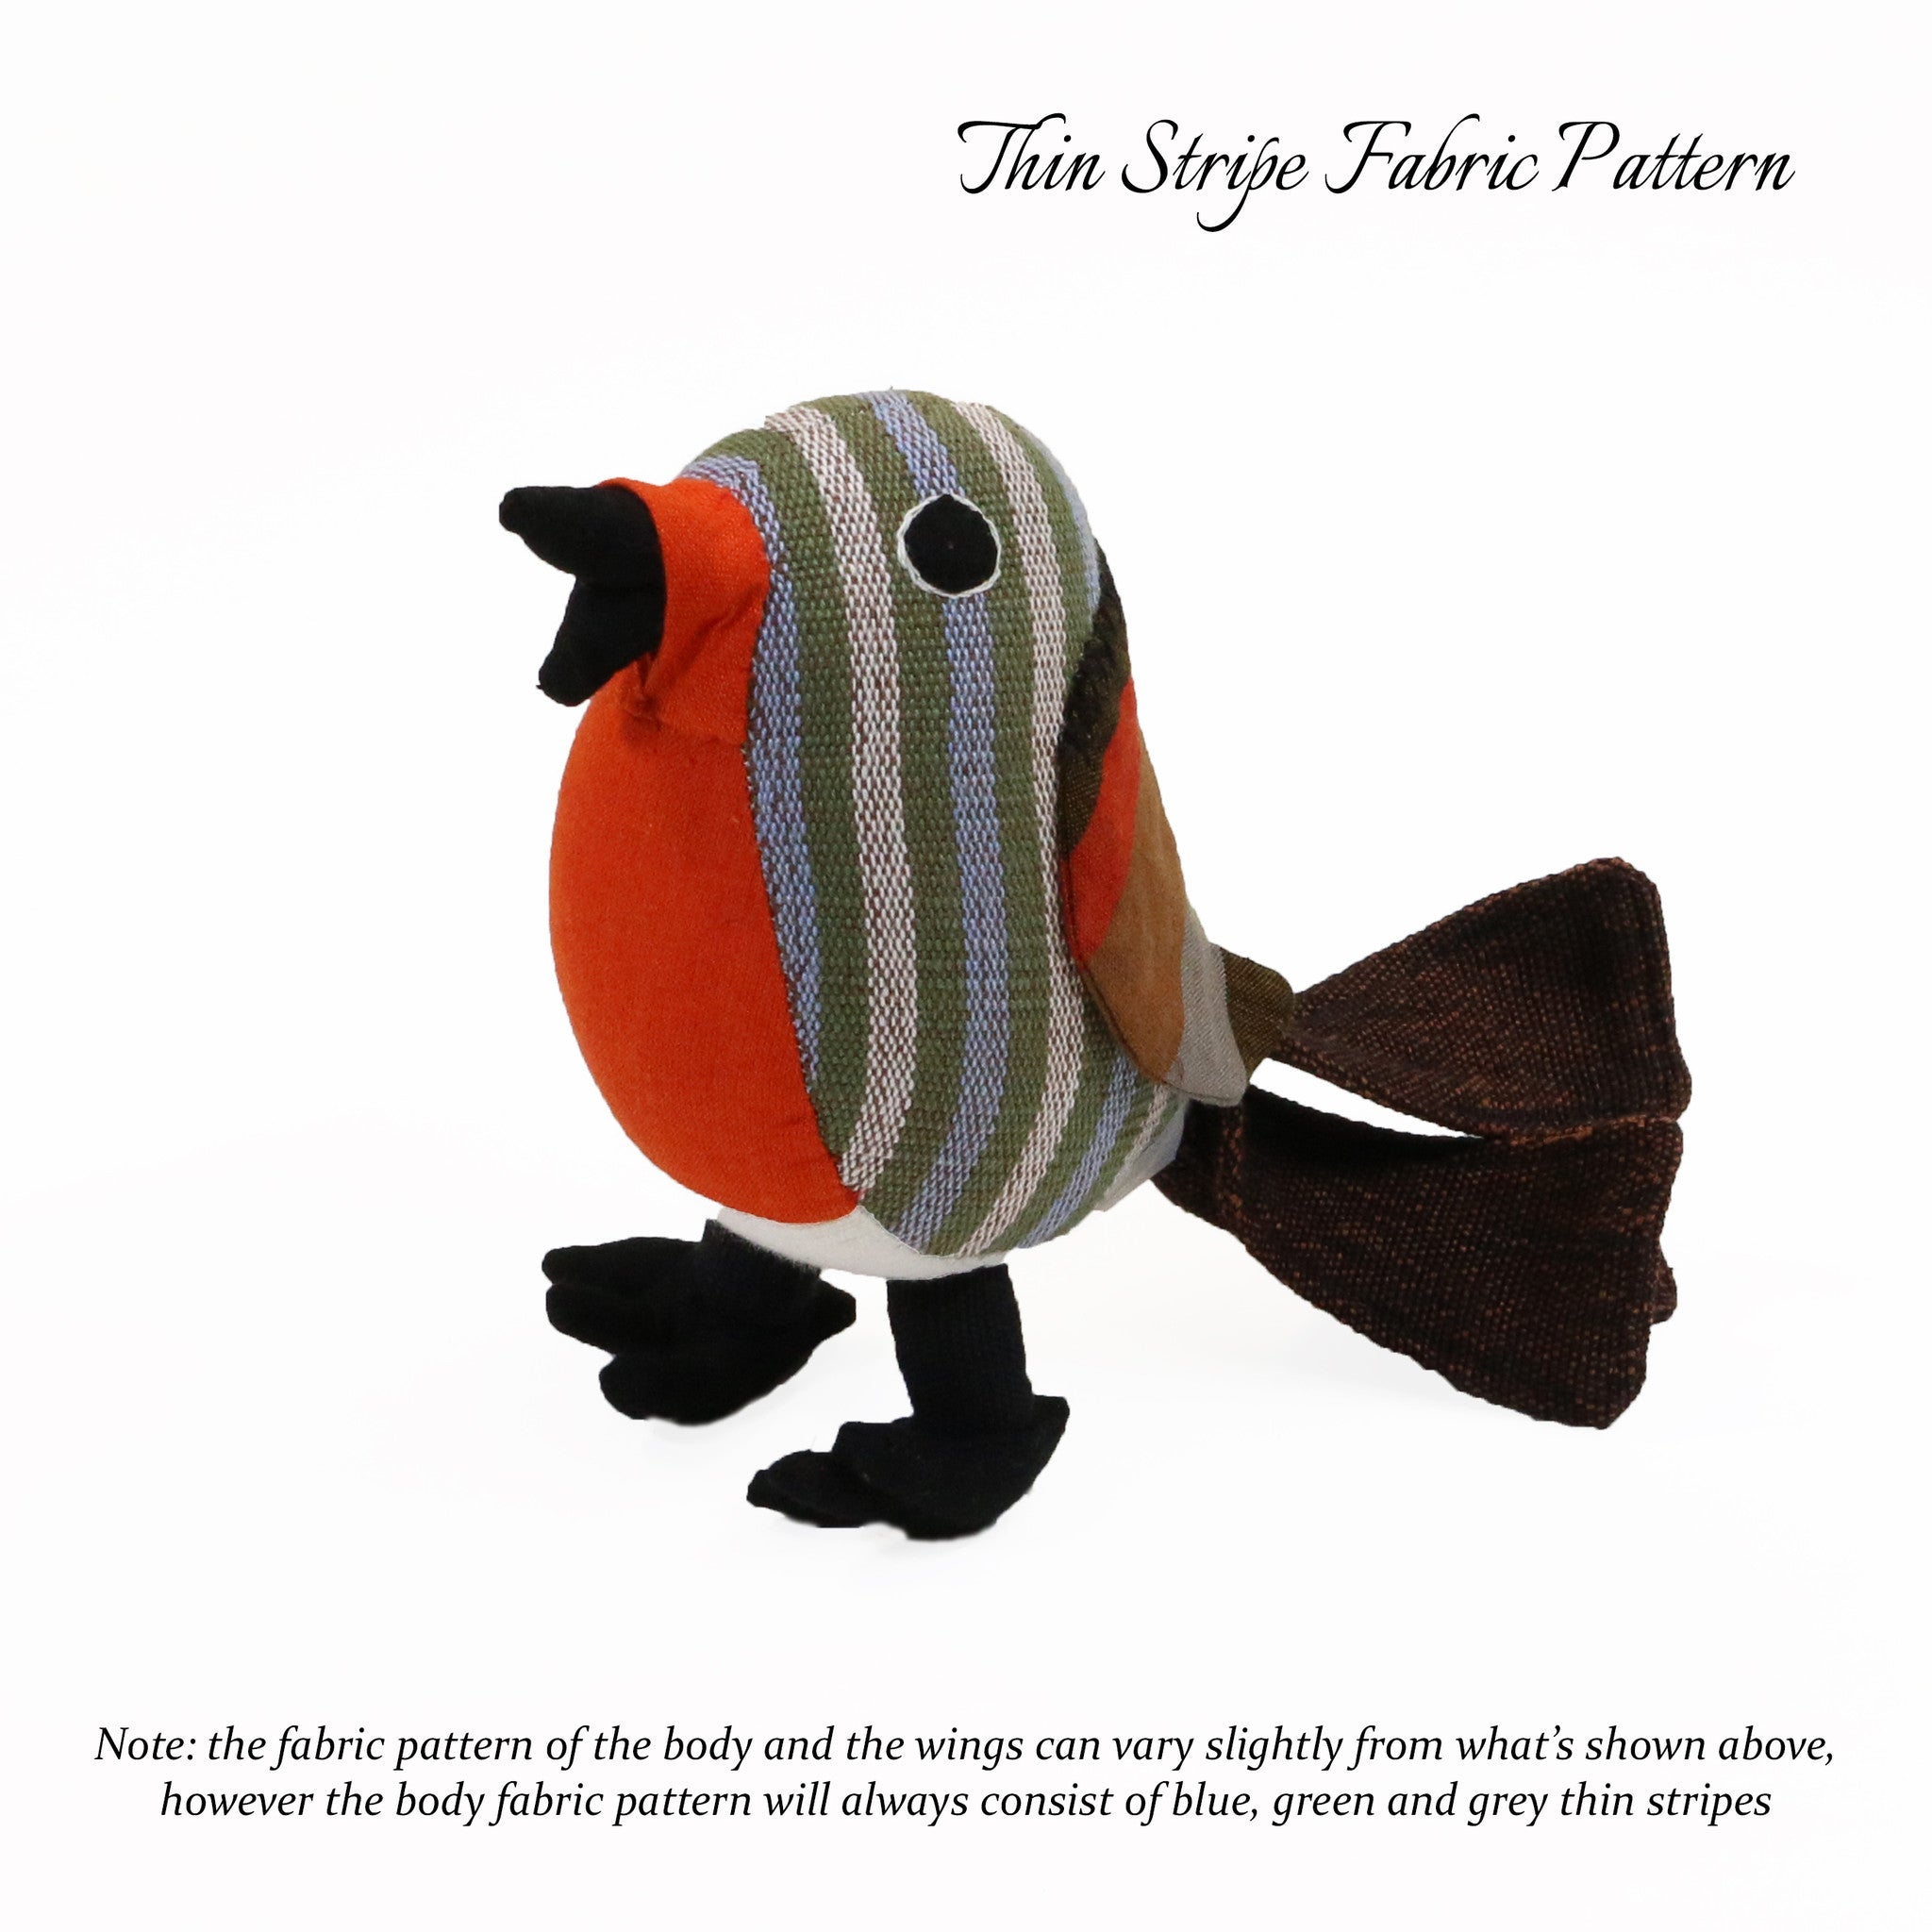 Ricky, the Red Robin (thin stripe fabric pattern, front view)